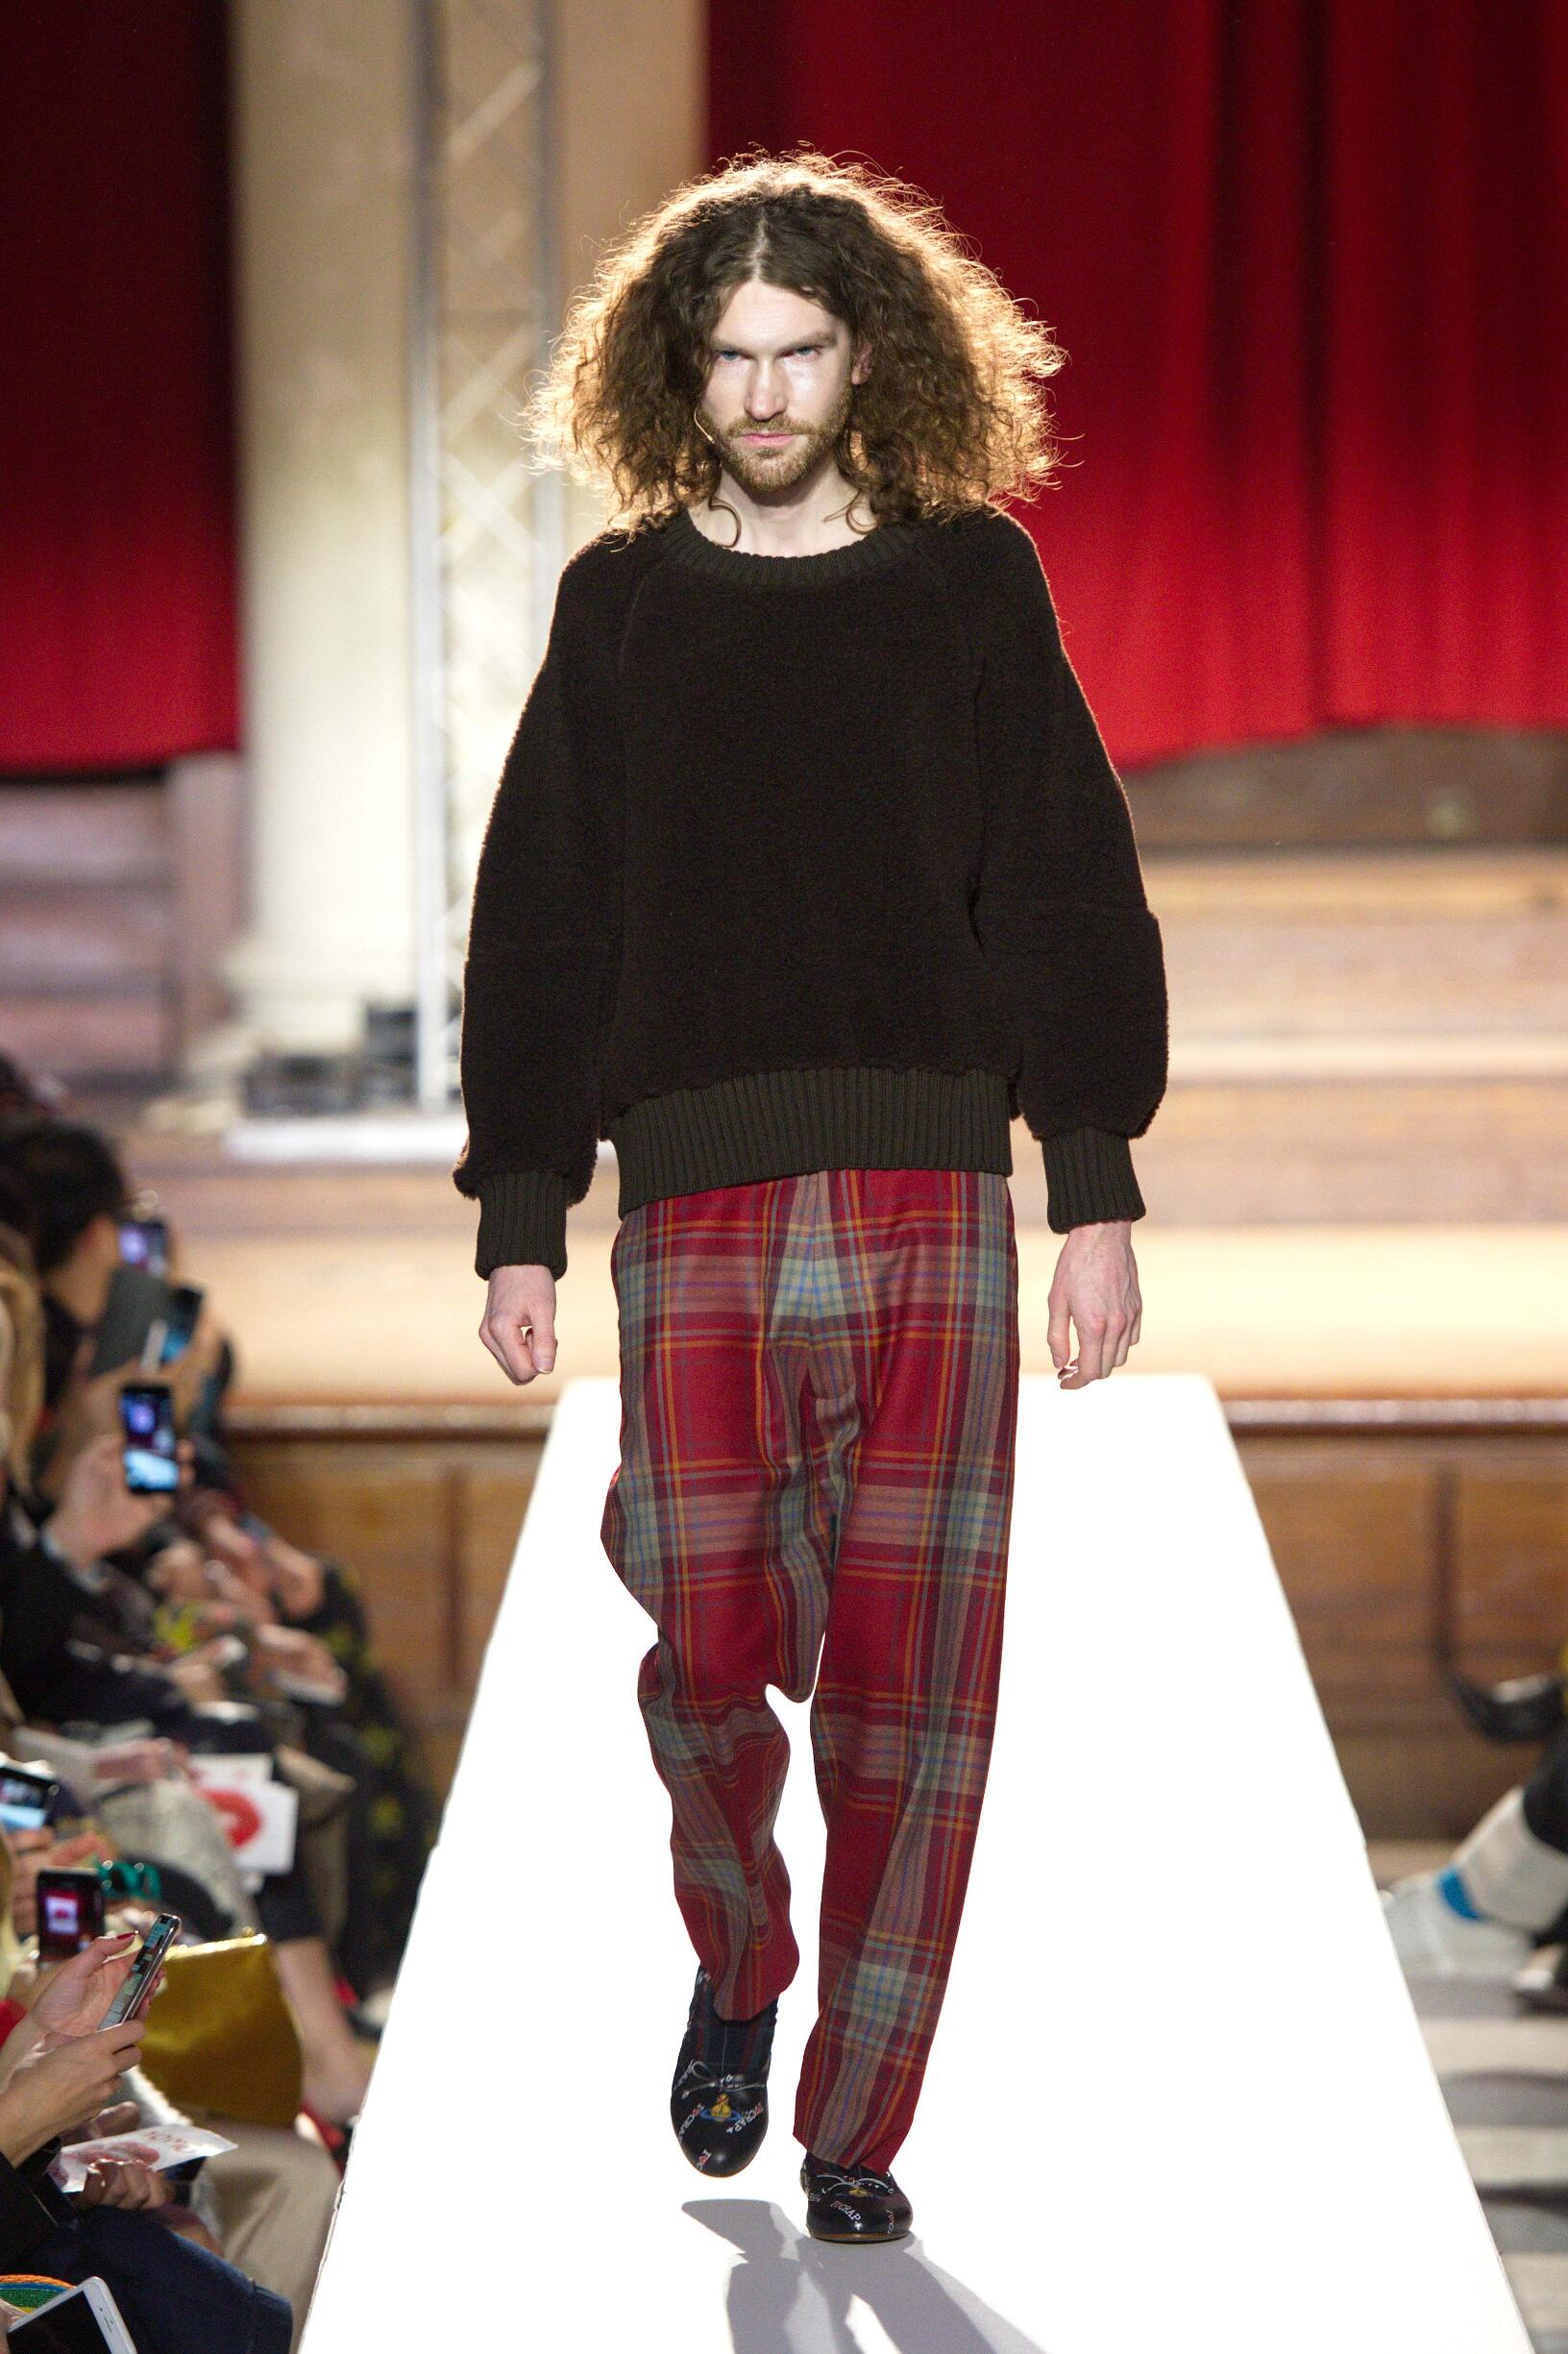 2019 Catwalk Vivienne Westwood Man Fashion Show Winter